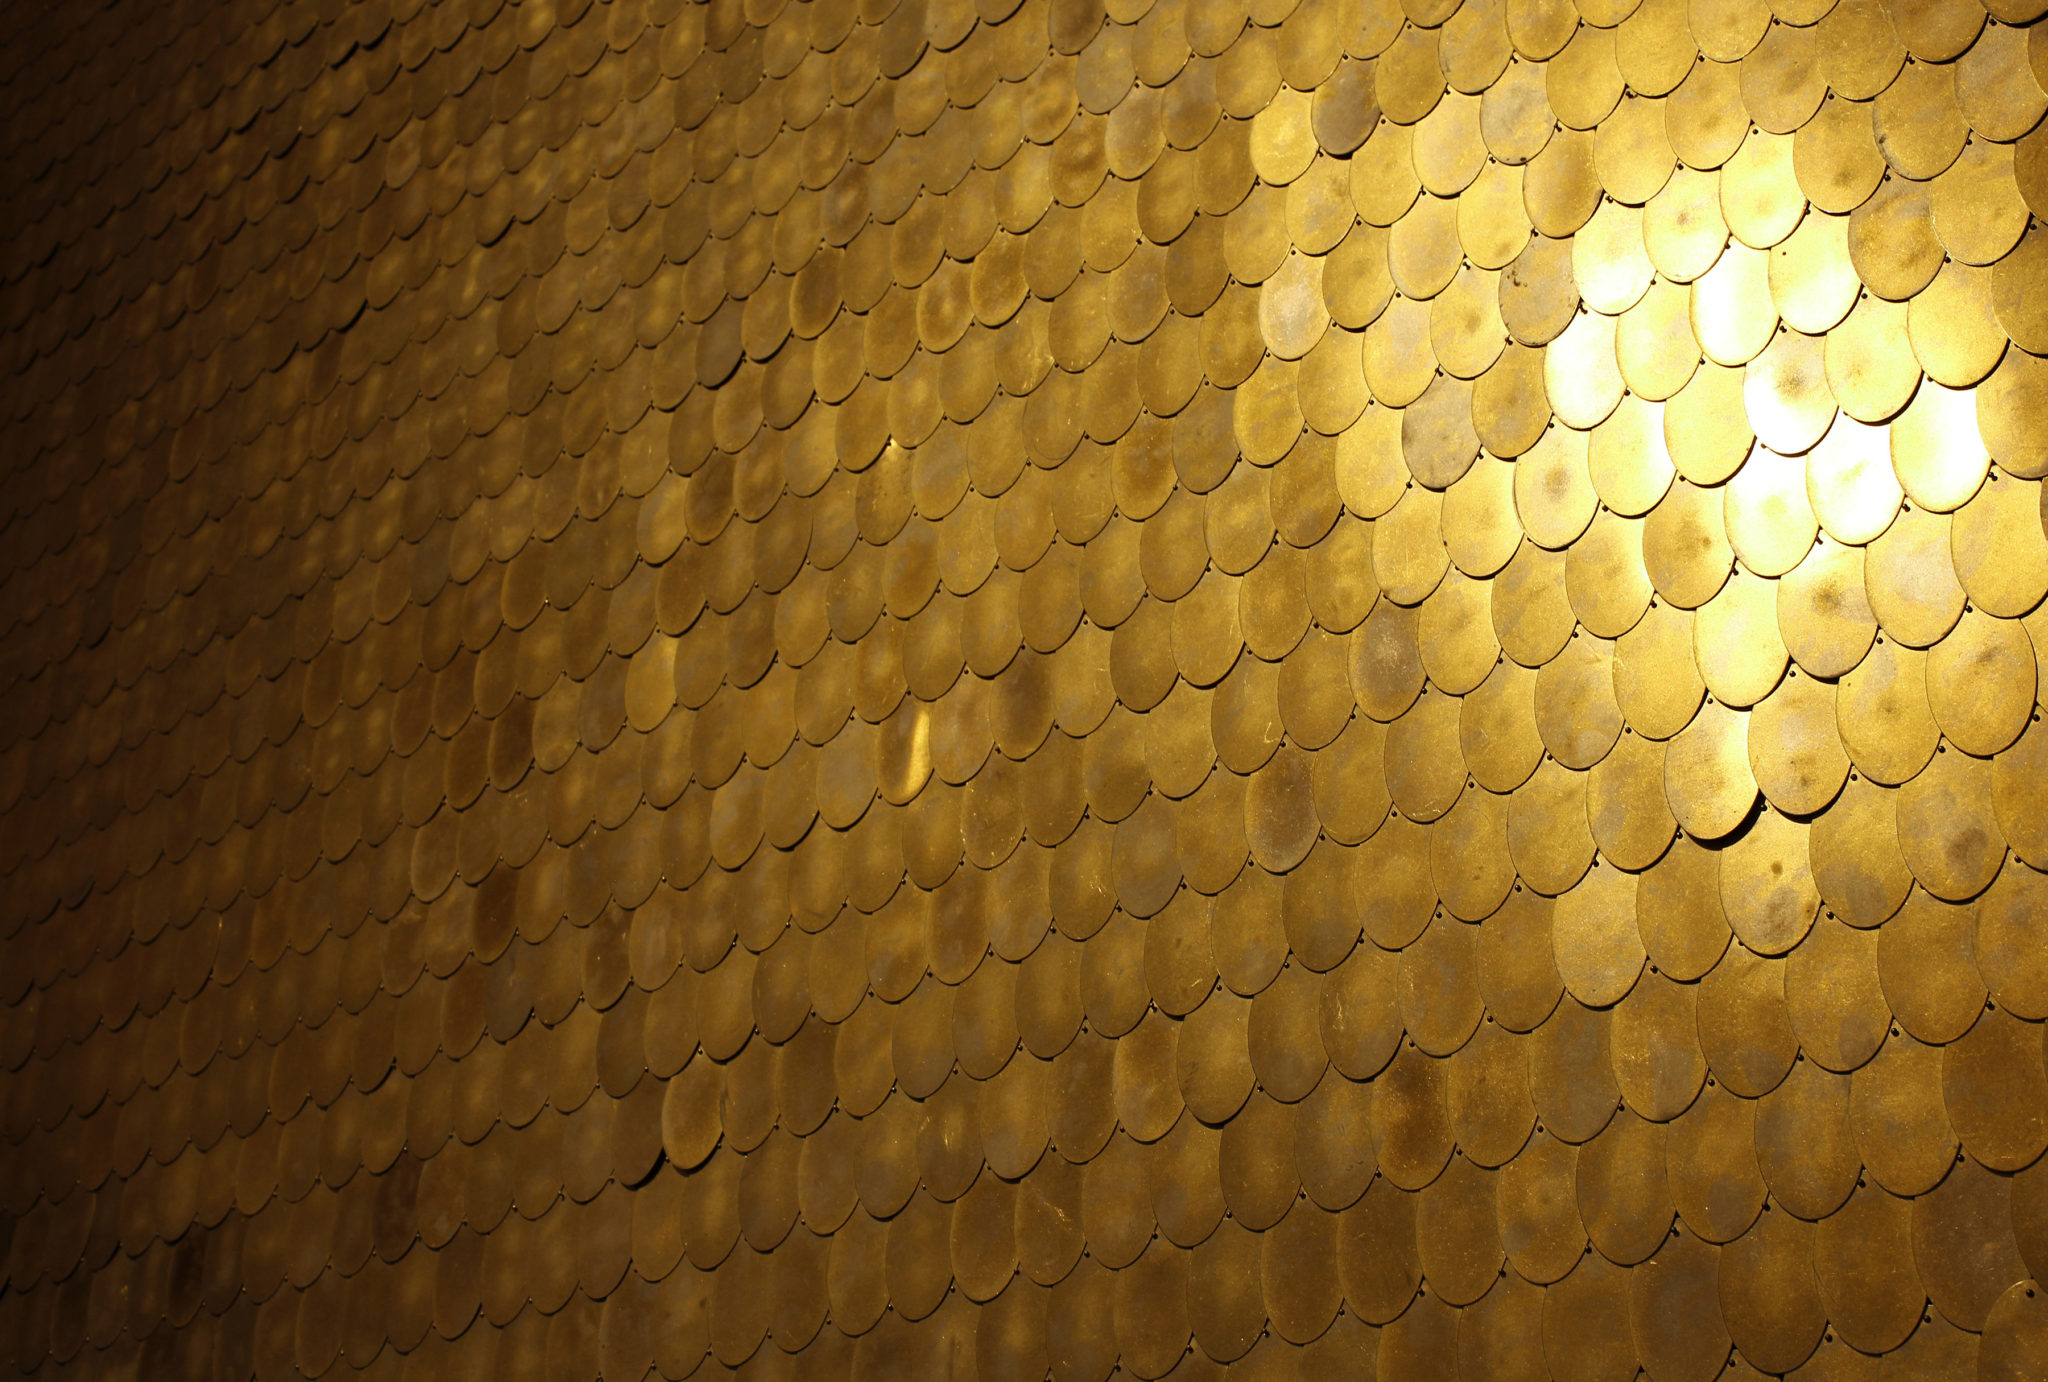 Brass 'sequin' tiles from the Shimmer Collection designed by Erica Tanov for Clé